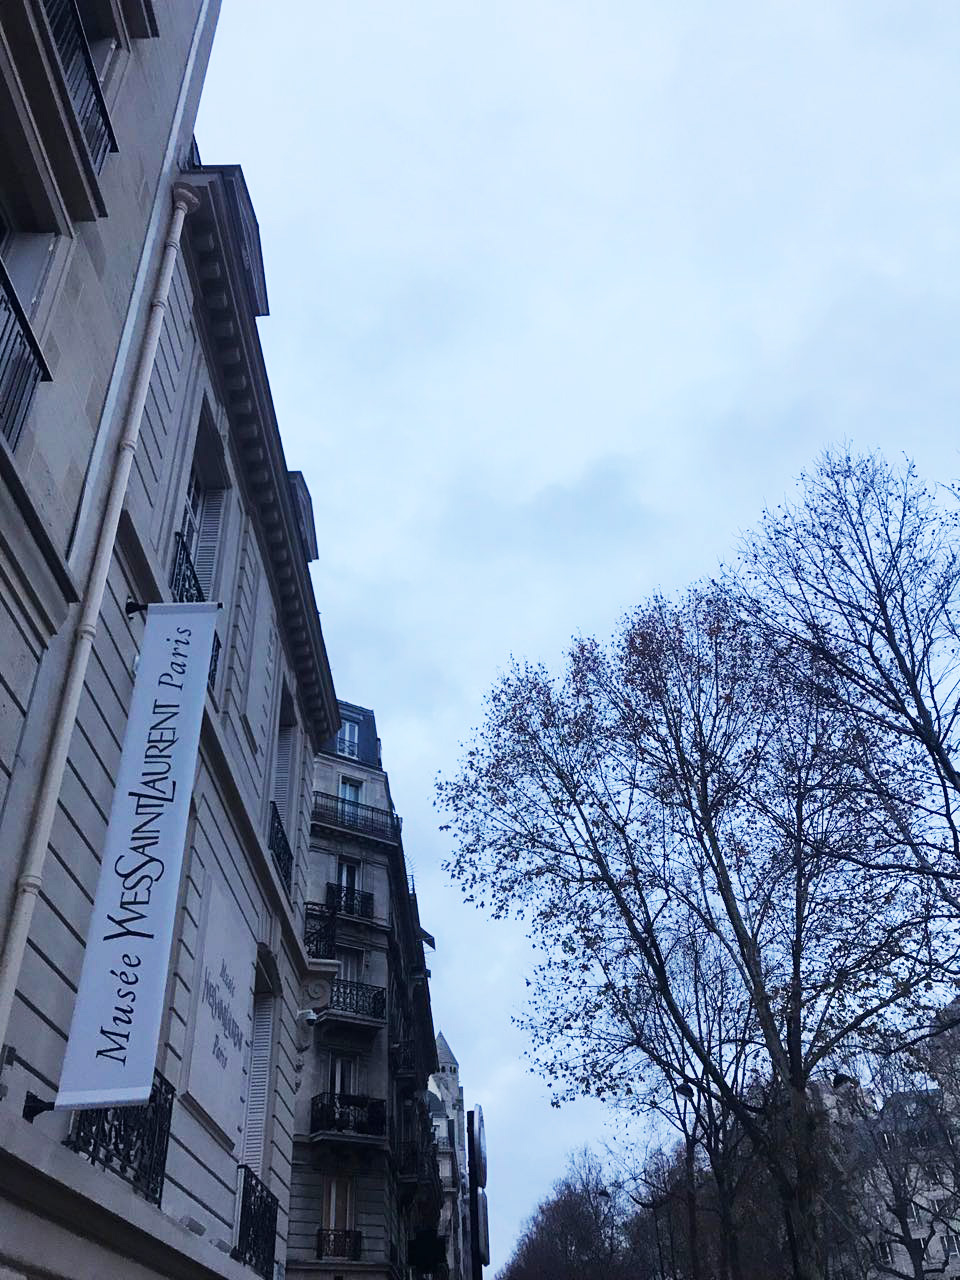 Bonjour - We couldn't stay away for long and decided to visit the exhibtion - could there be a better excuse for a weekend in beautiful Paris?